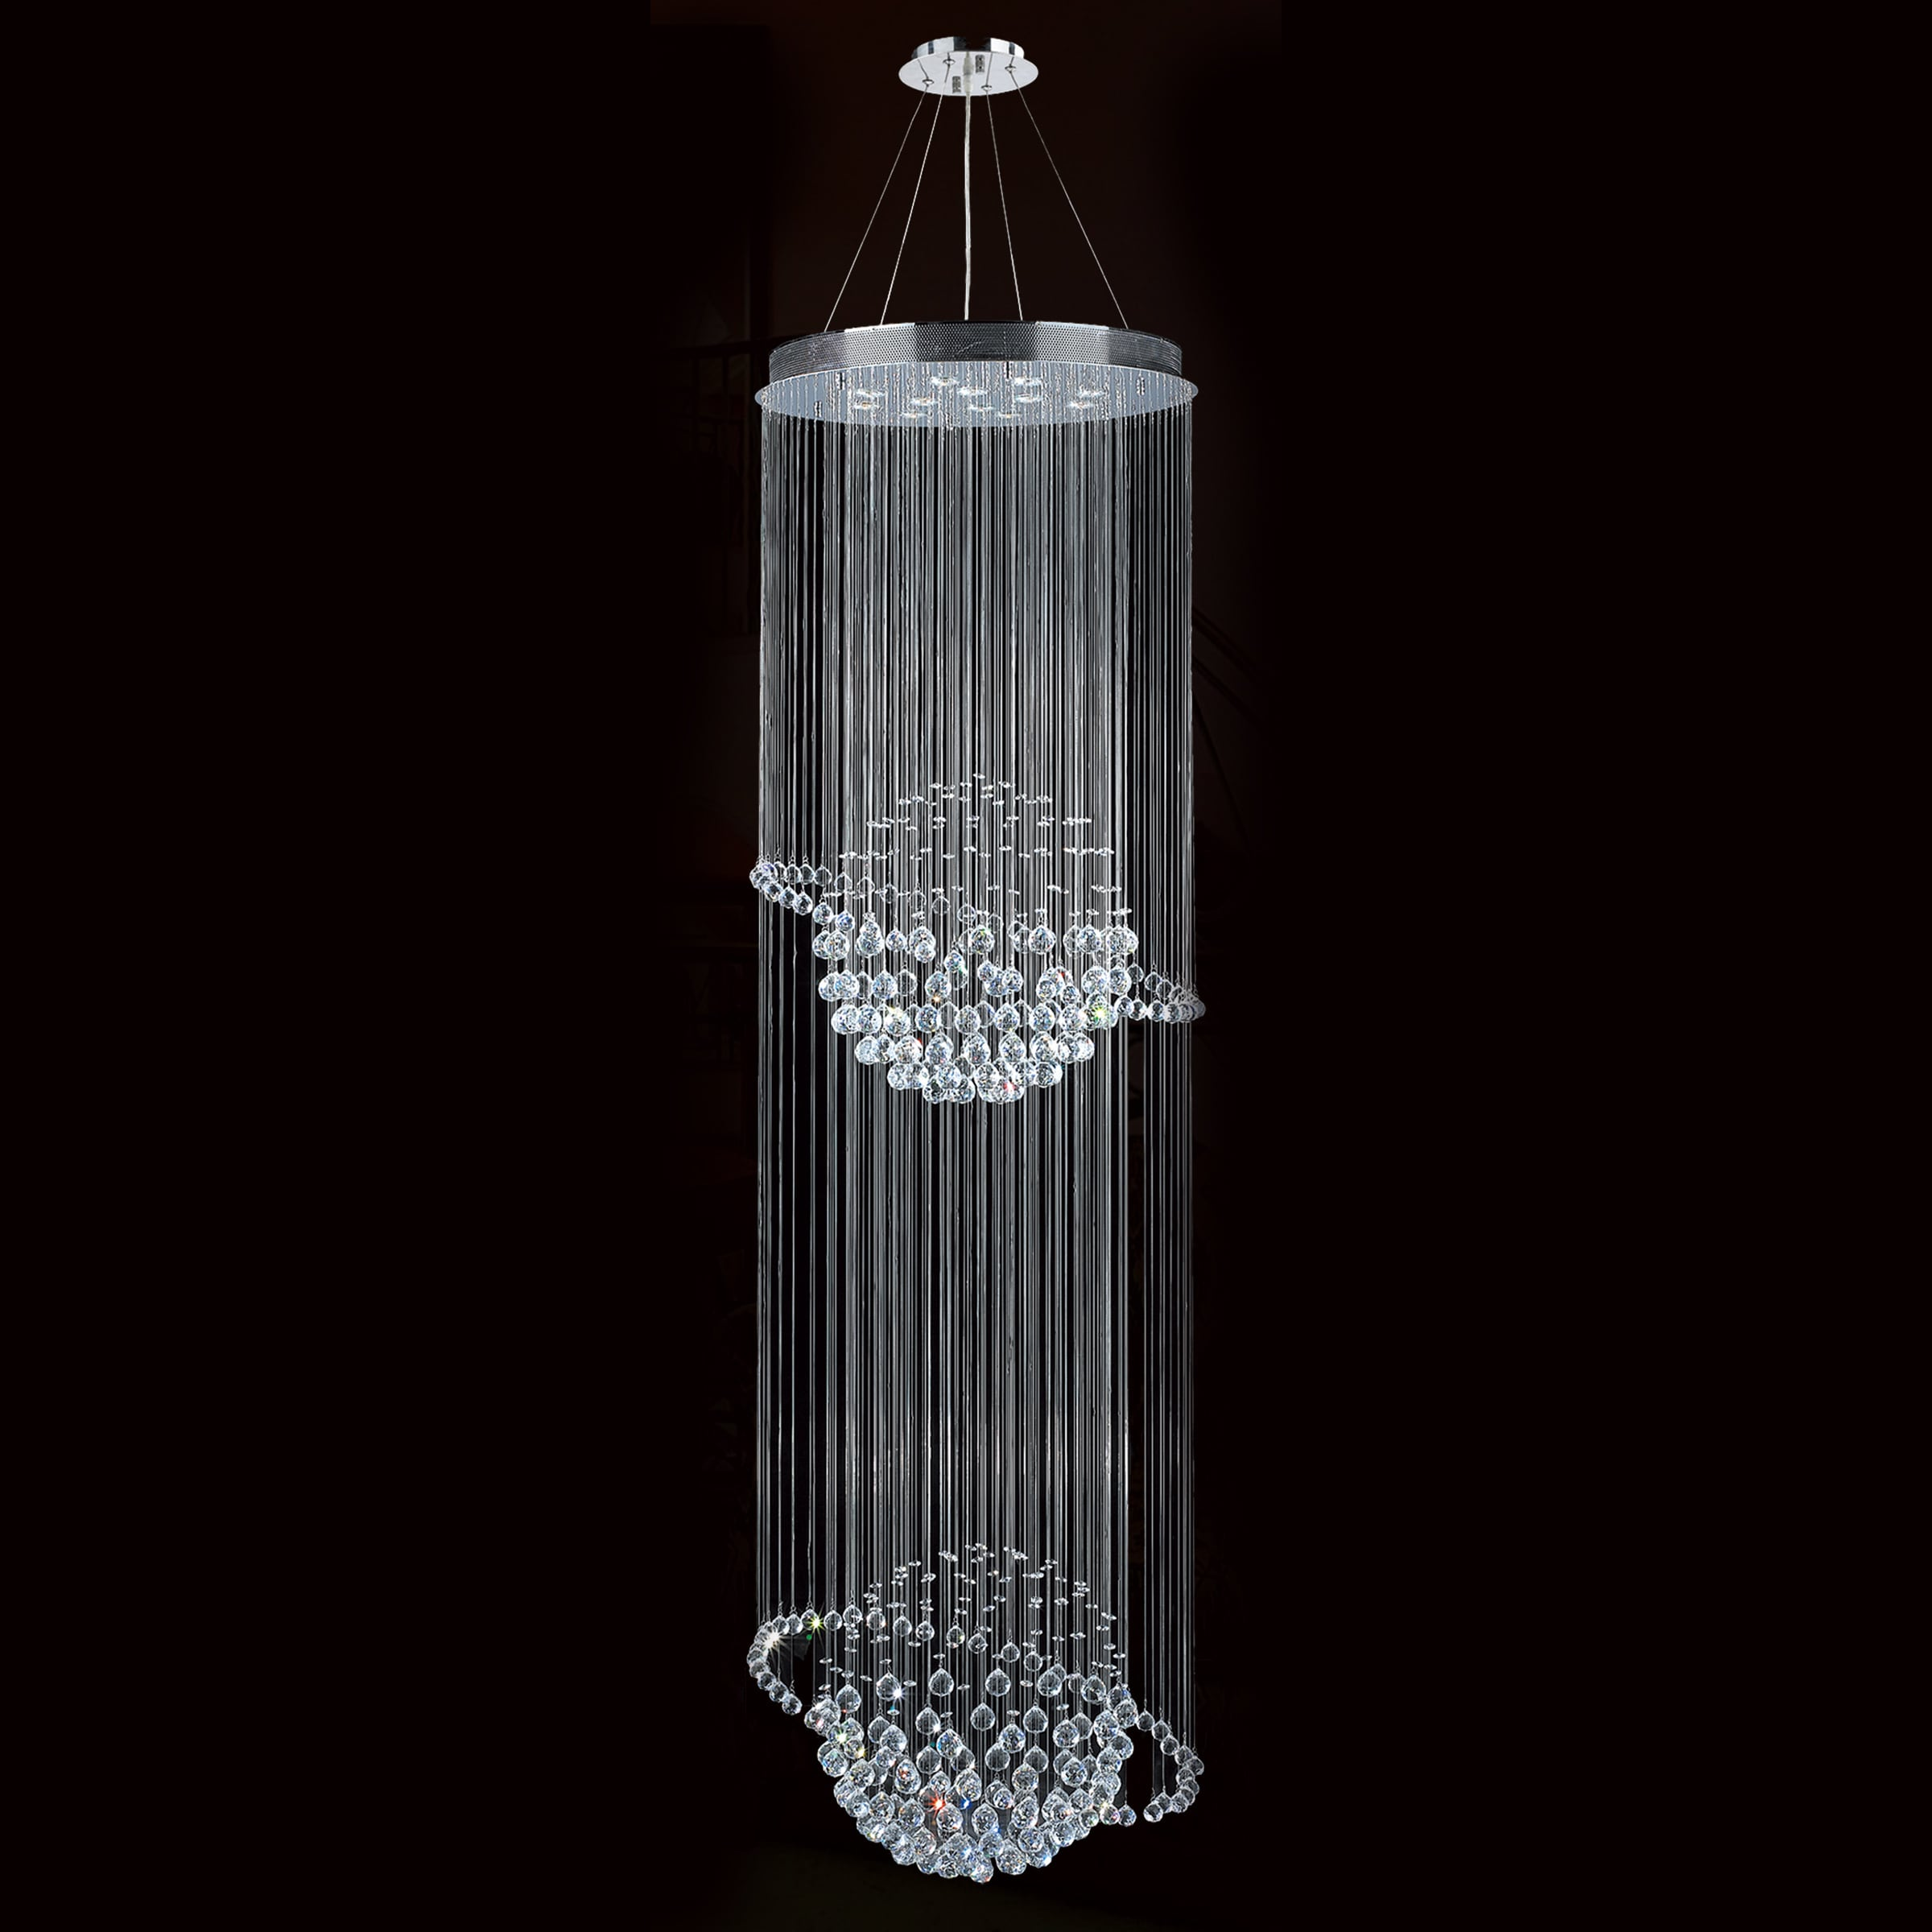 Galaxy 12 light chrome finish and clear crystal modern chandelier galaxy 12 light chrome finish and clear crystal modern chandelier two 2 tier large 28 wide x 96 long free shipping today overstock 17838966 arubaitofo Images